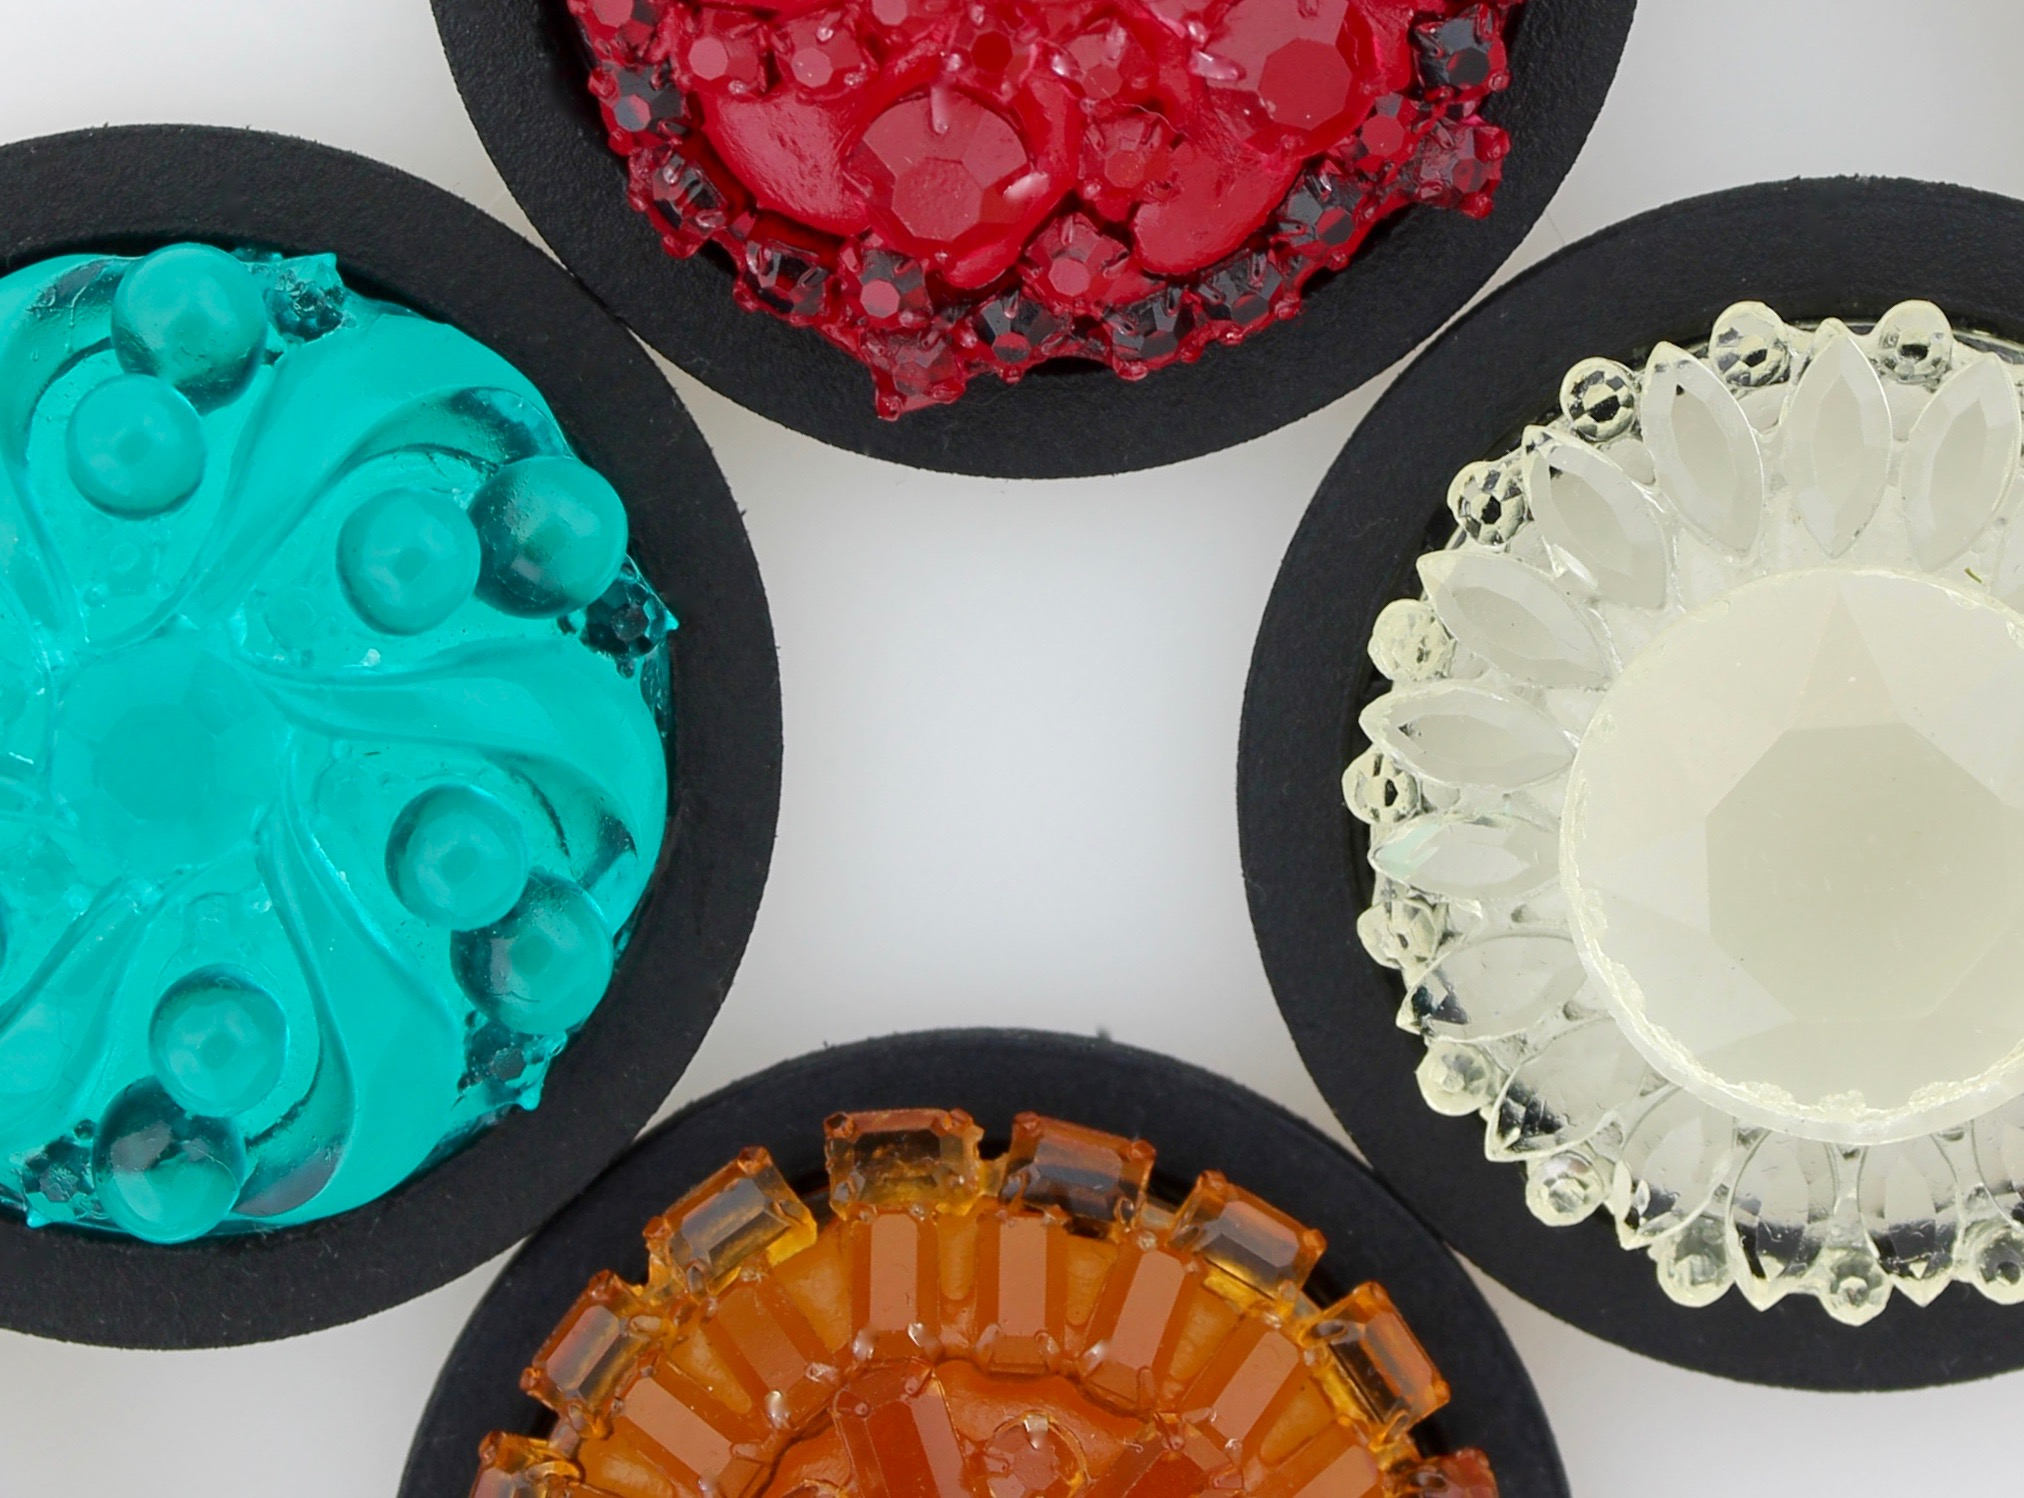 Brooch - ongoing series of cast resin pendants